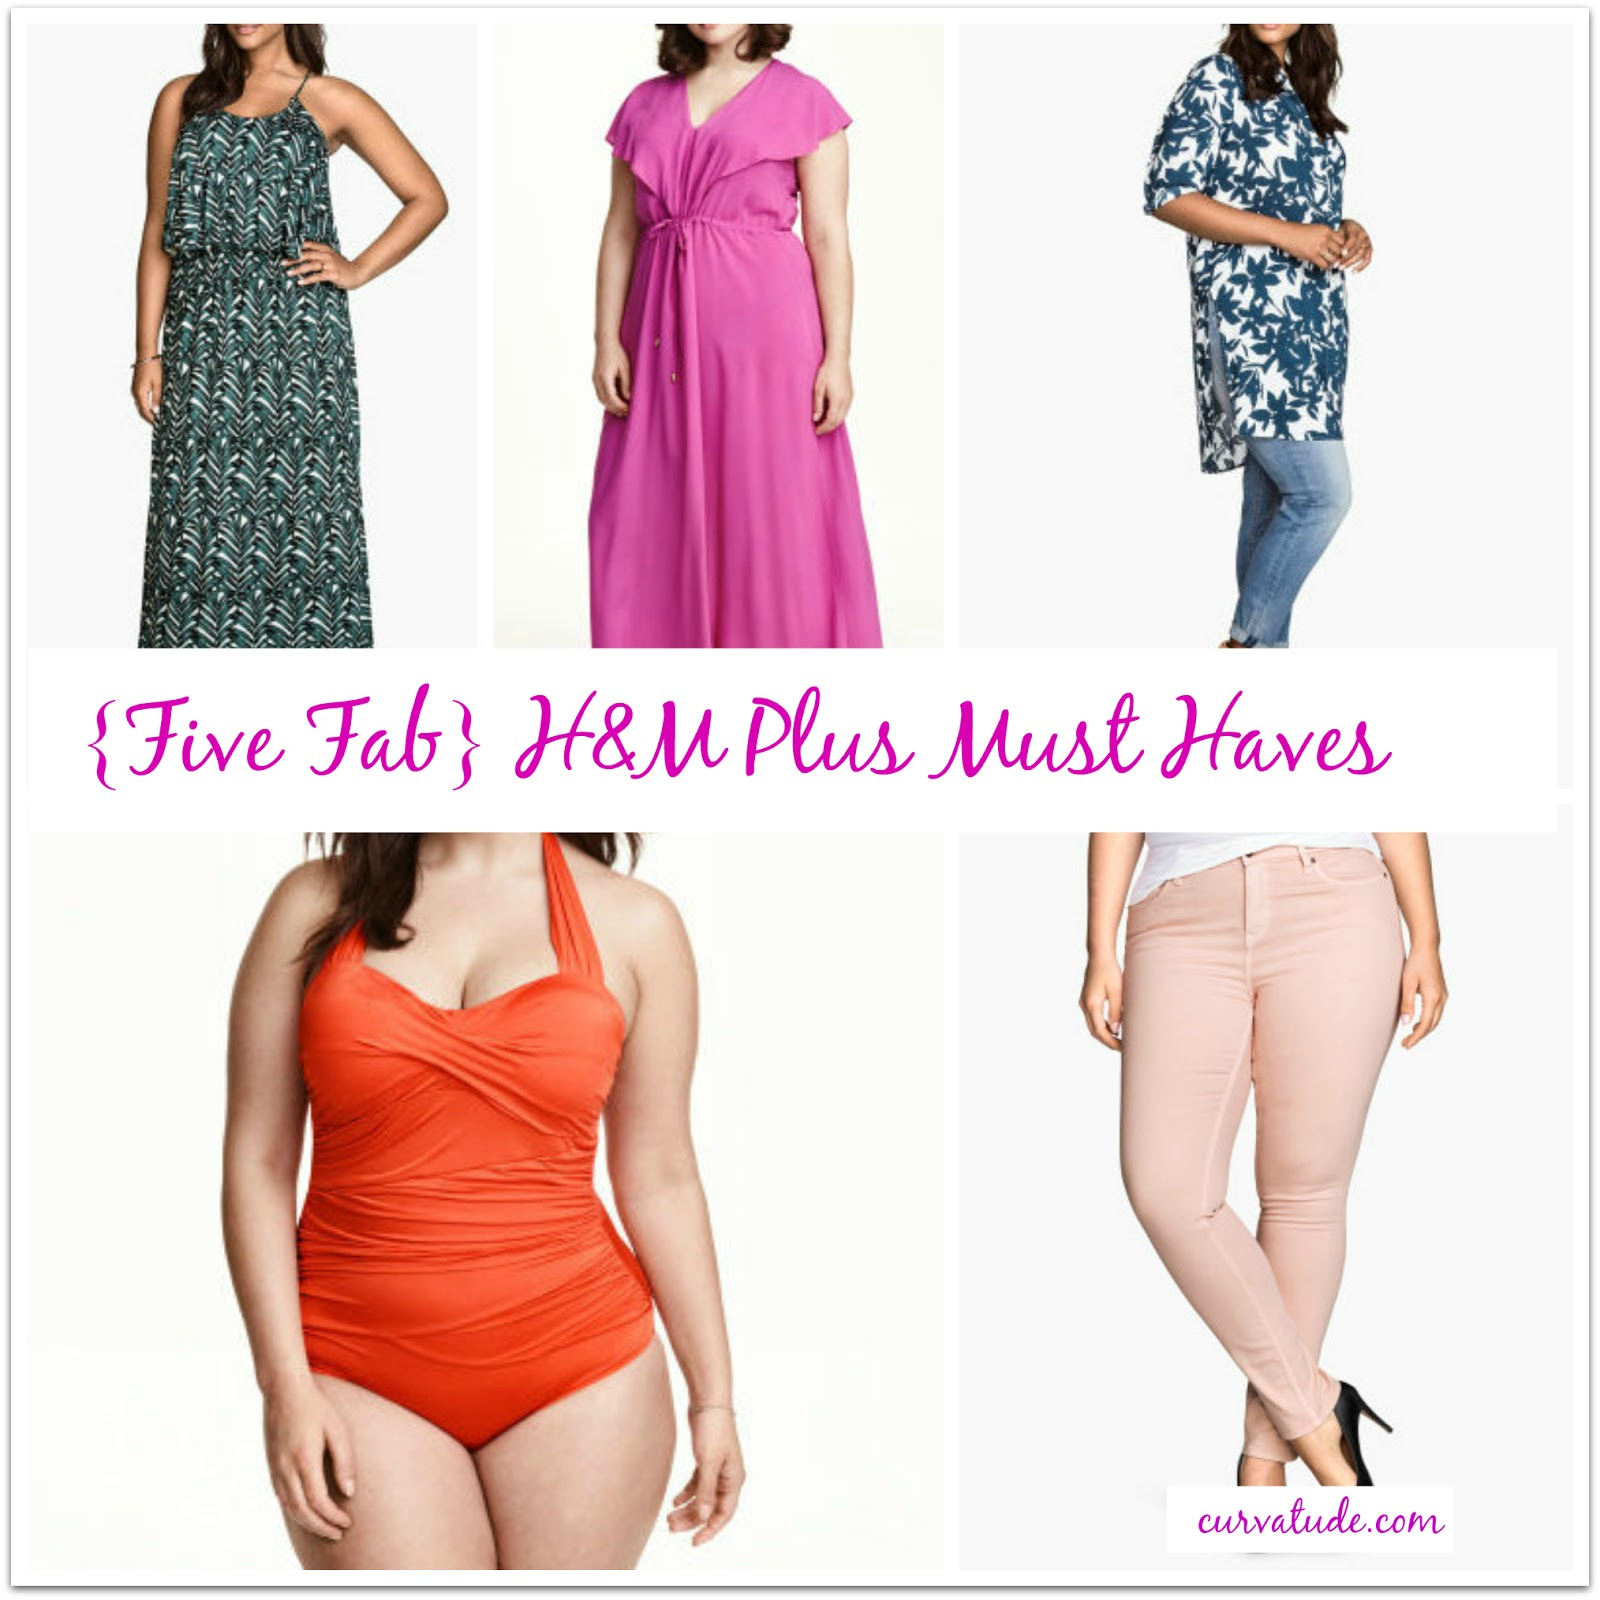 Five Fab} H&M Plus Must Haves #PlusSizePick • Curvatude